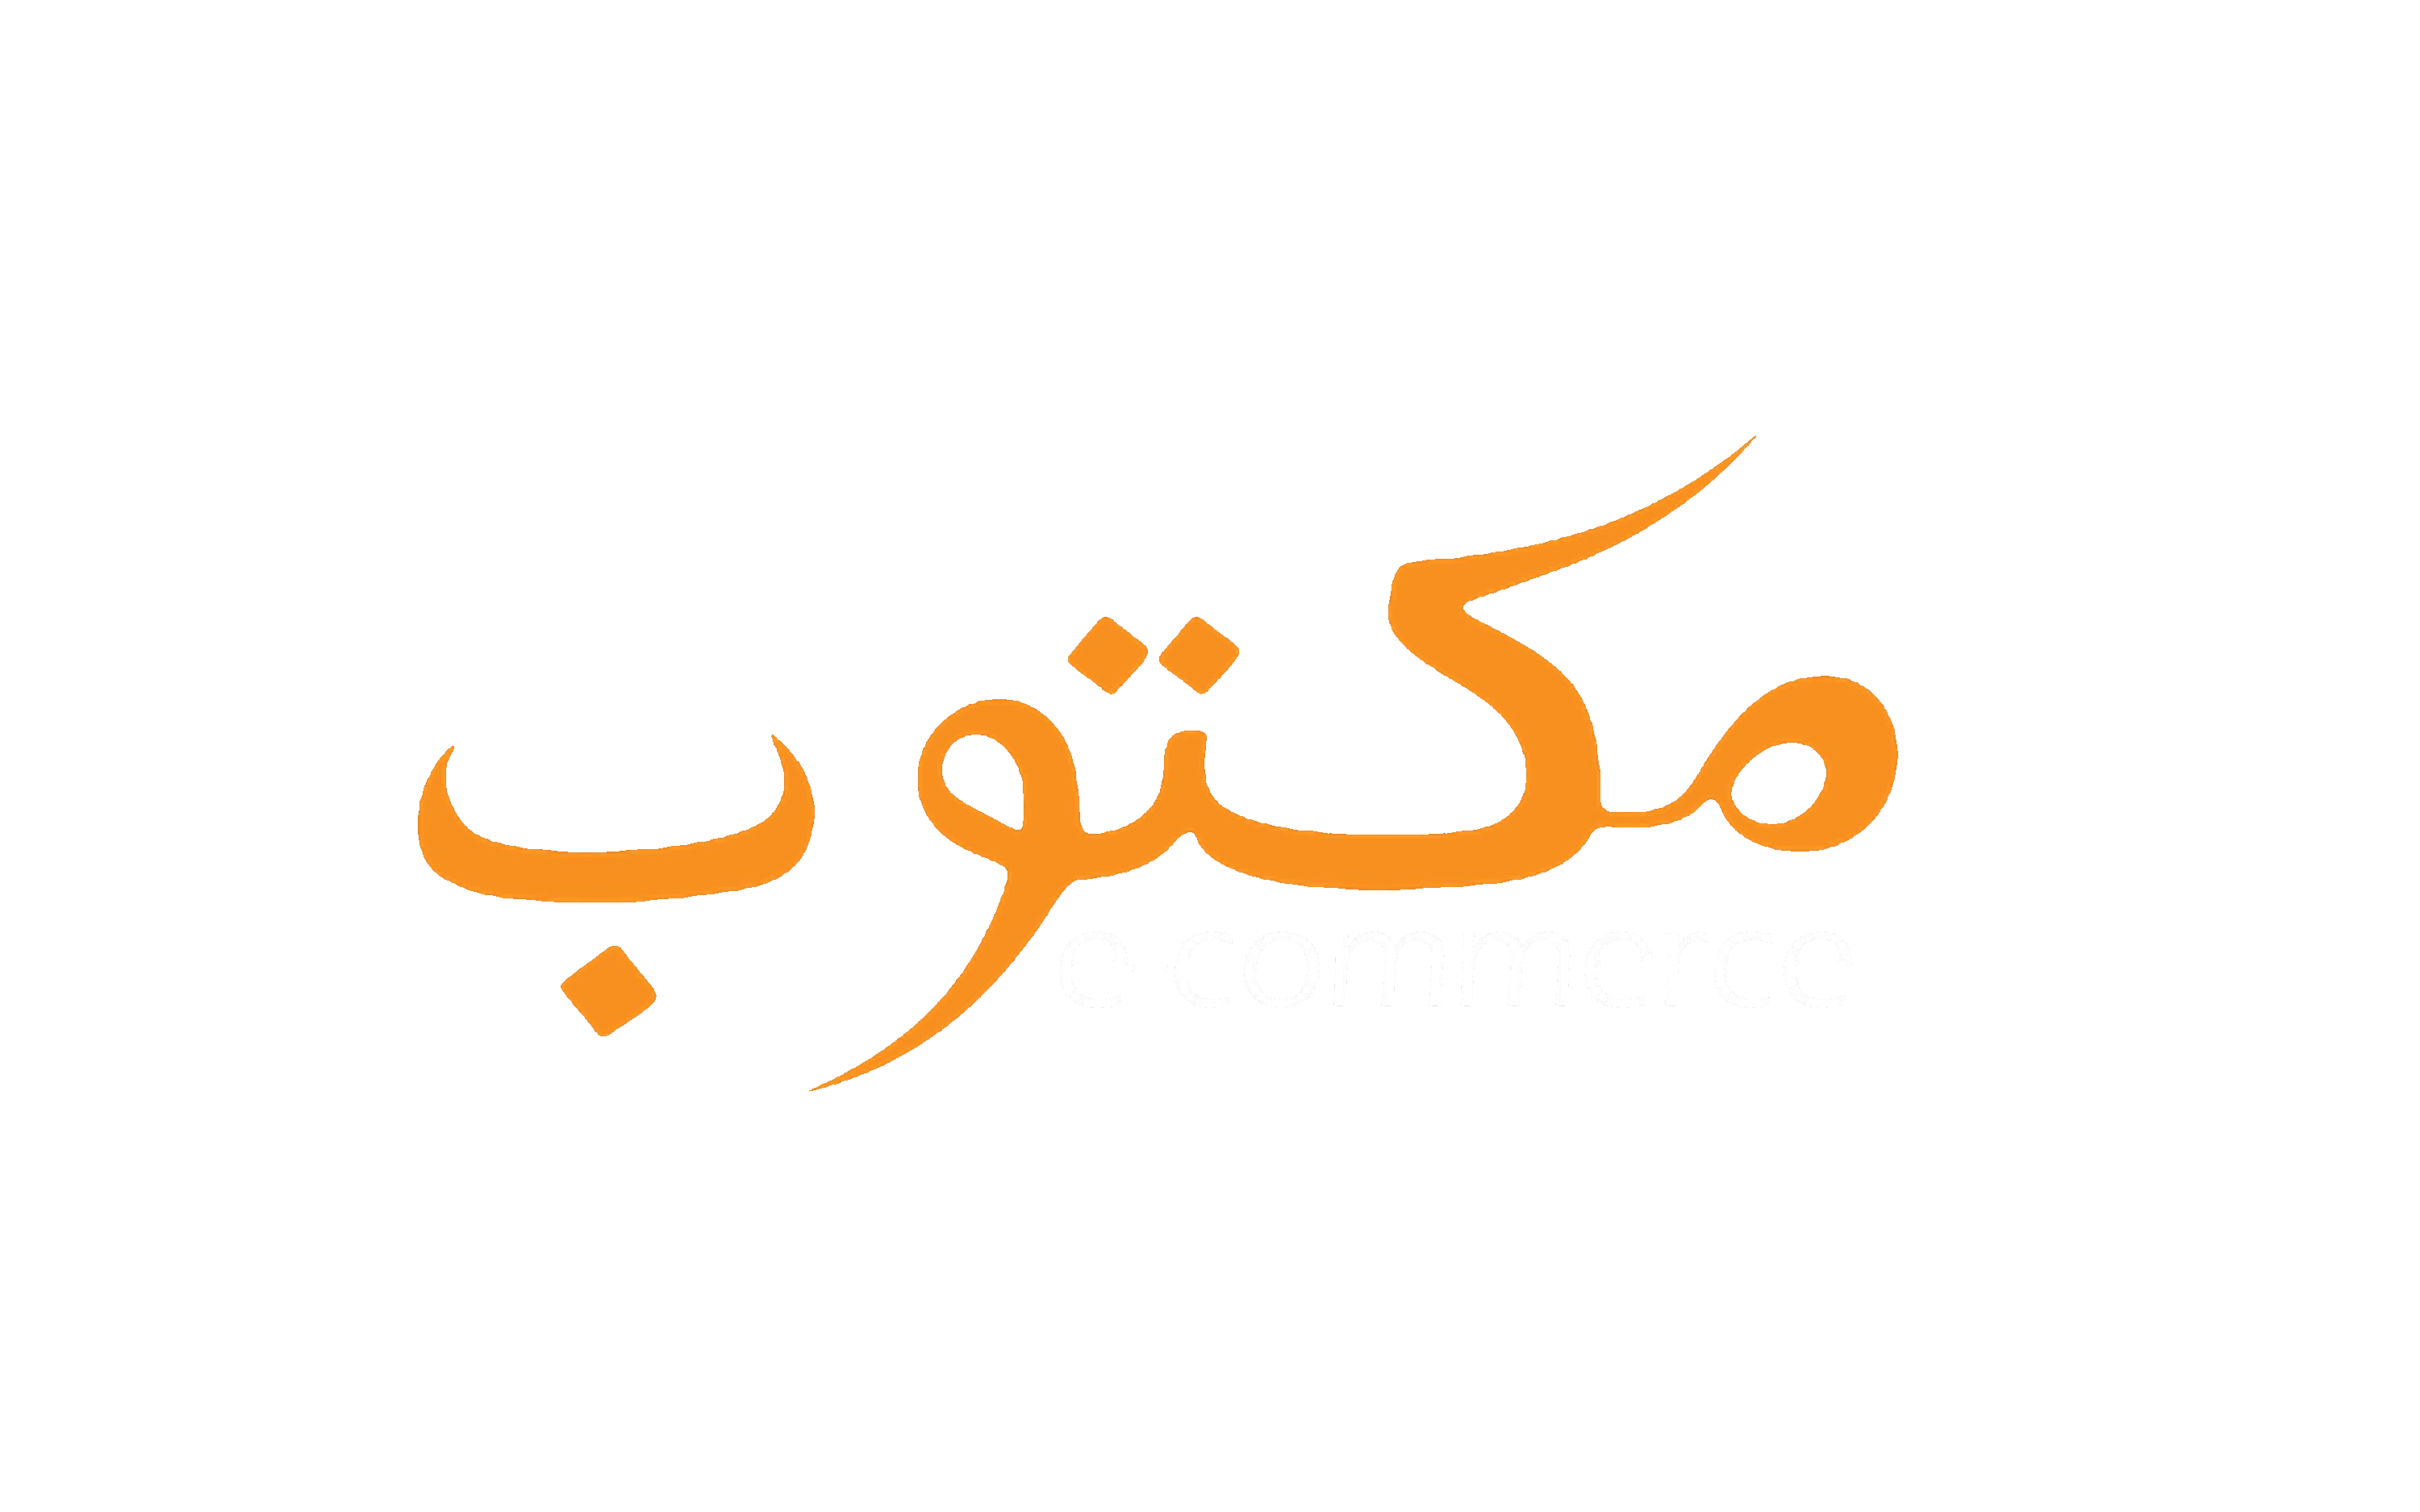 E-COMMERCE MAKTUB